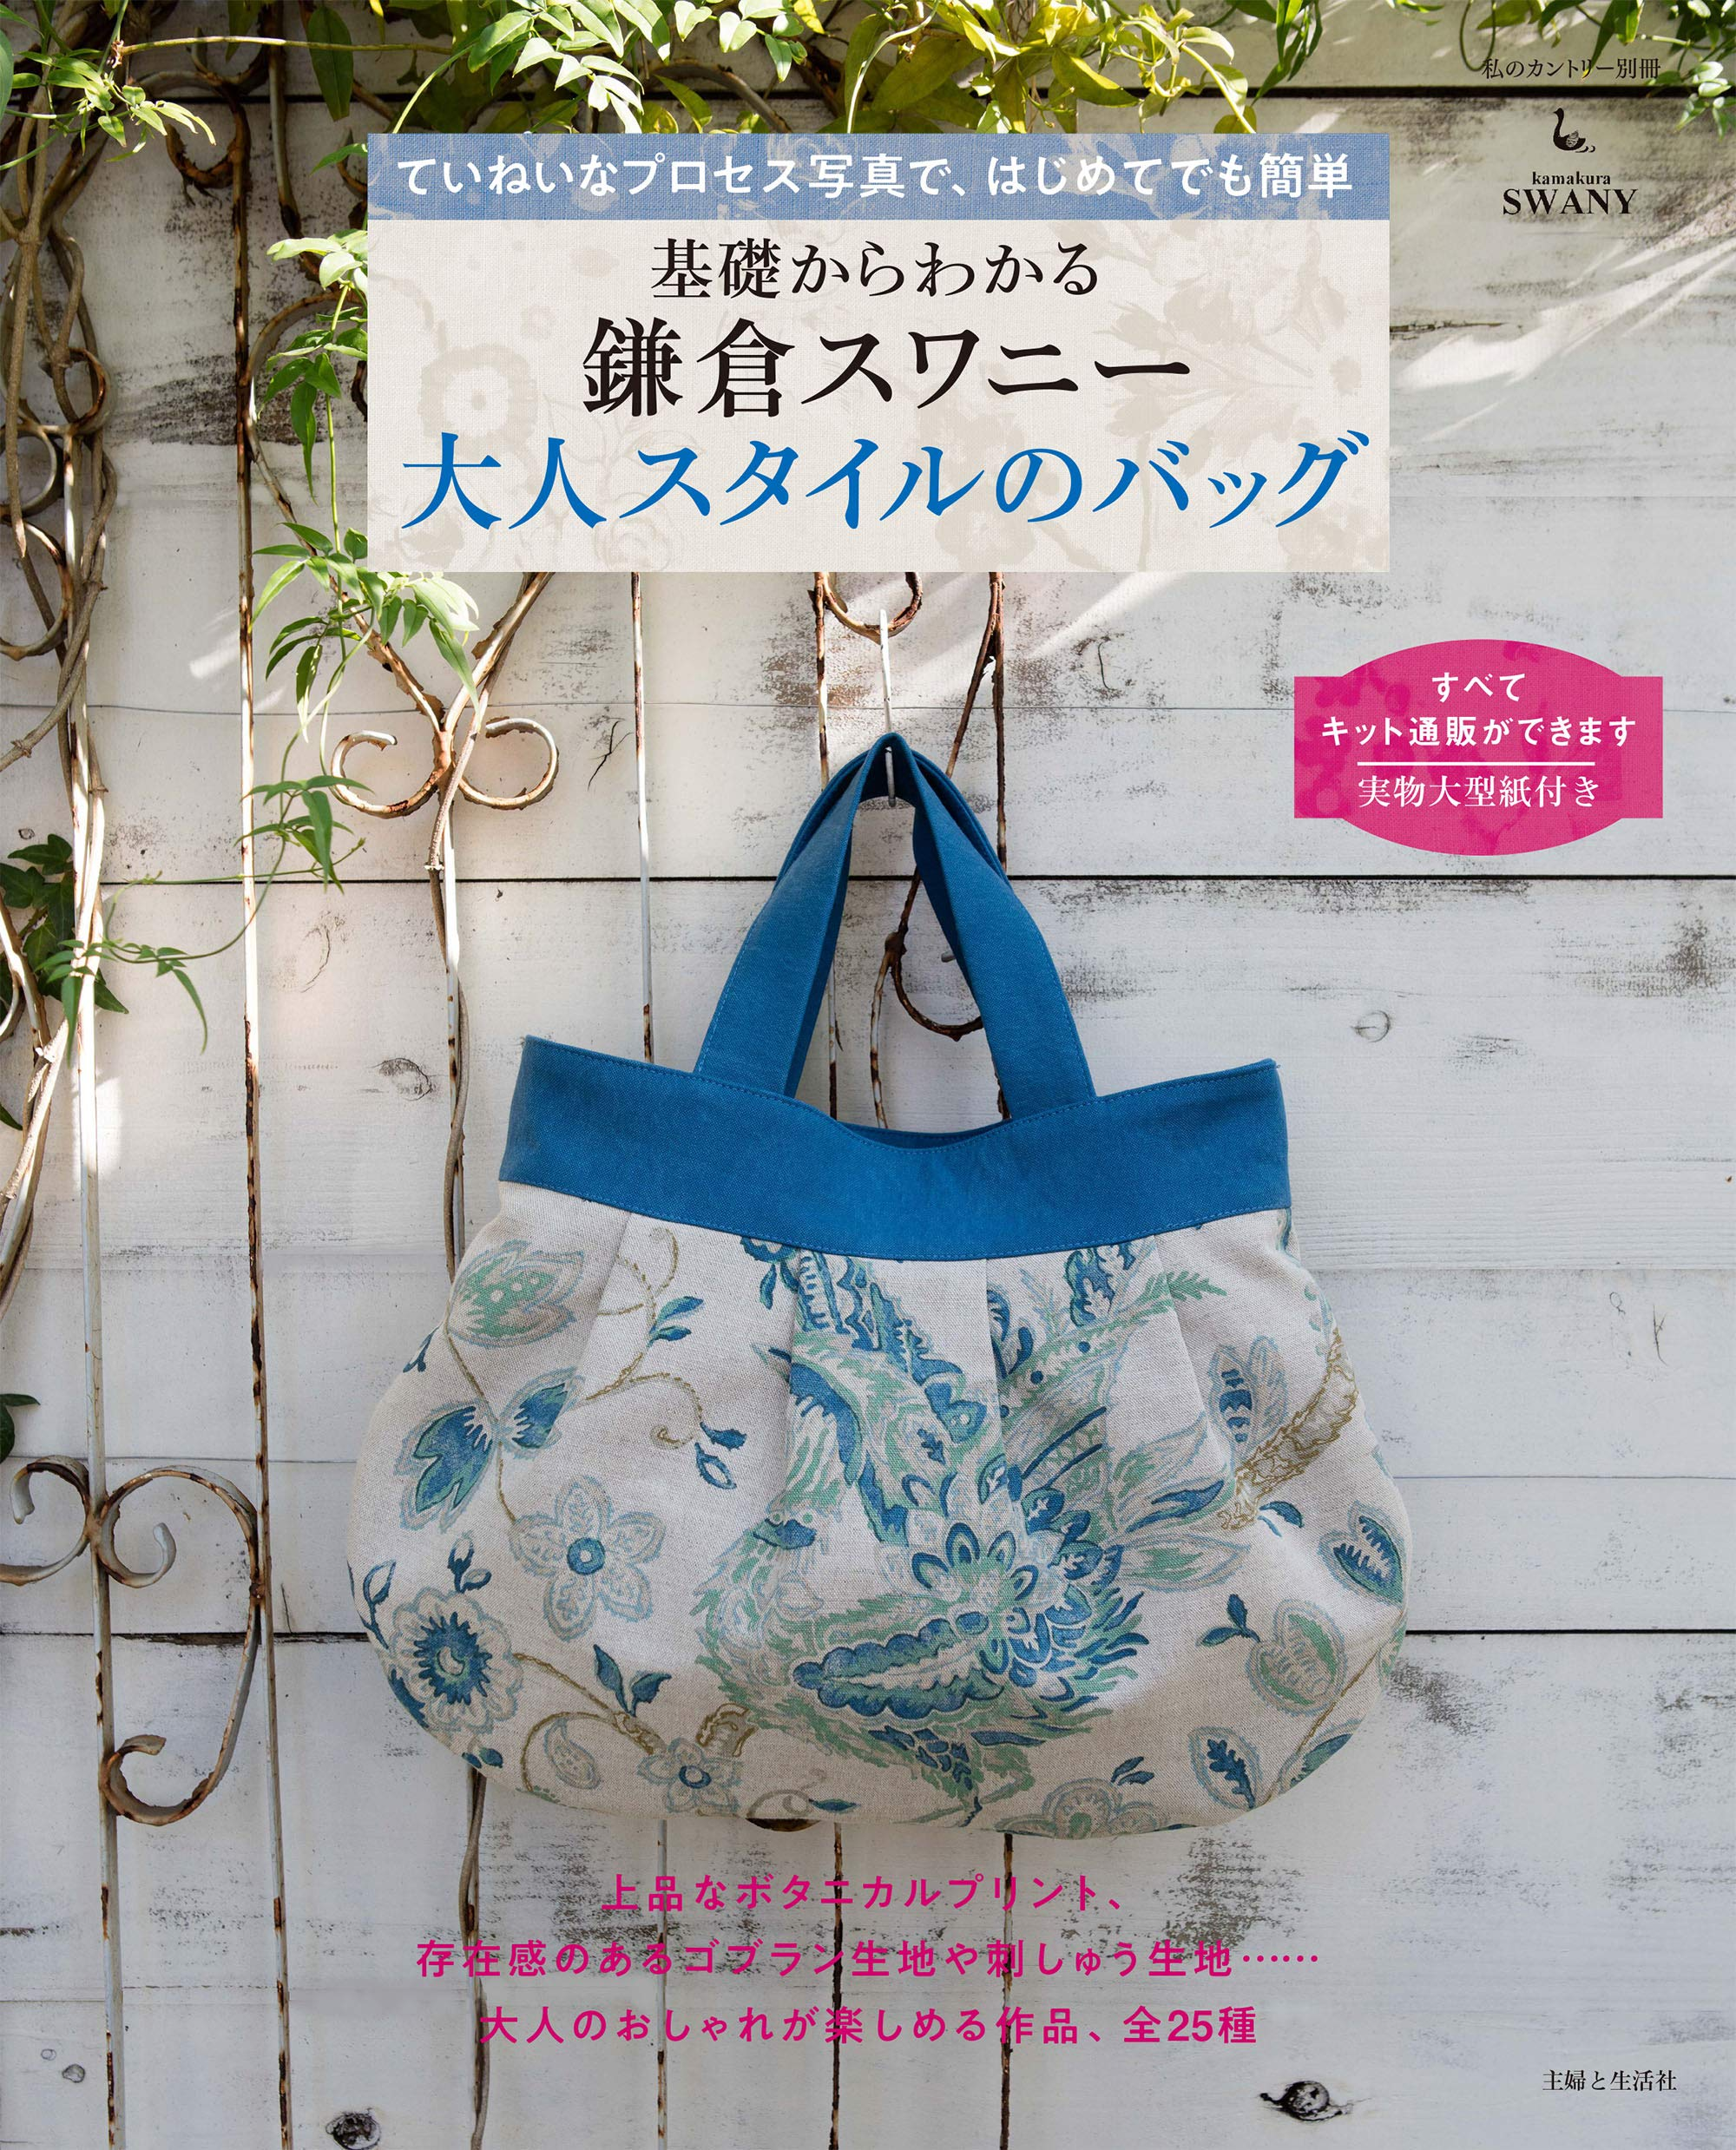 Kamakura Suwanee adult style bag (from the basics)